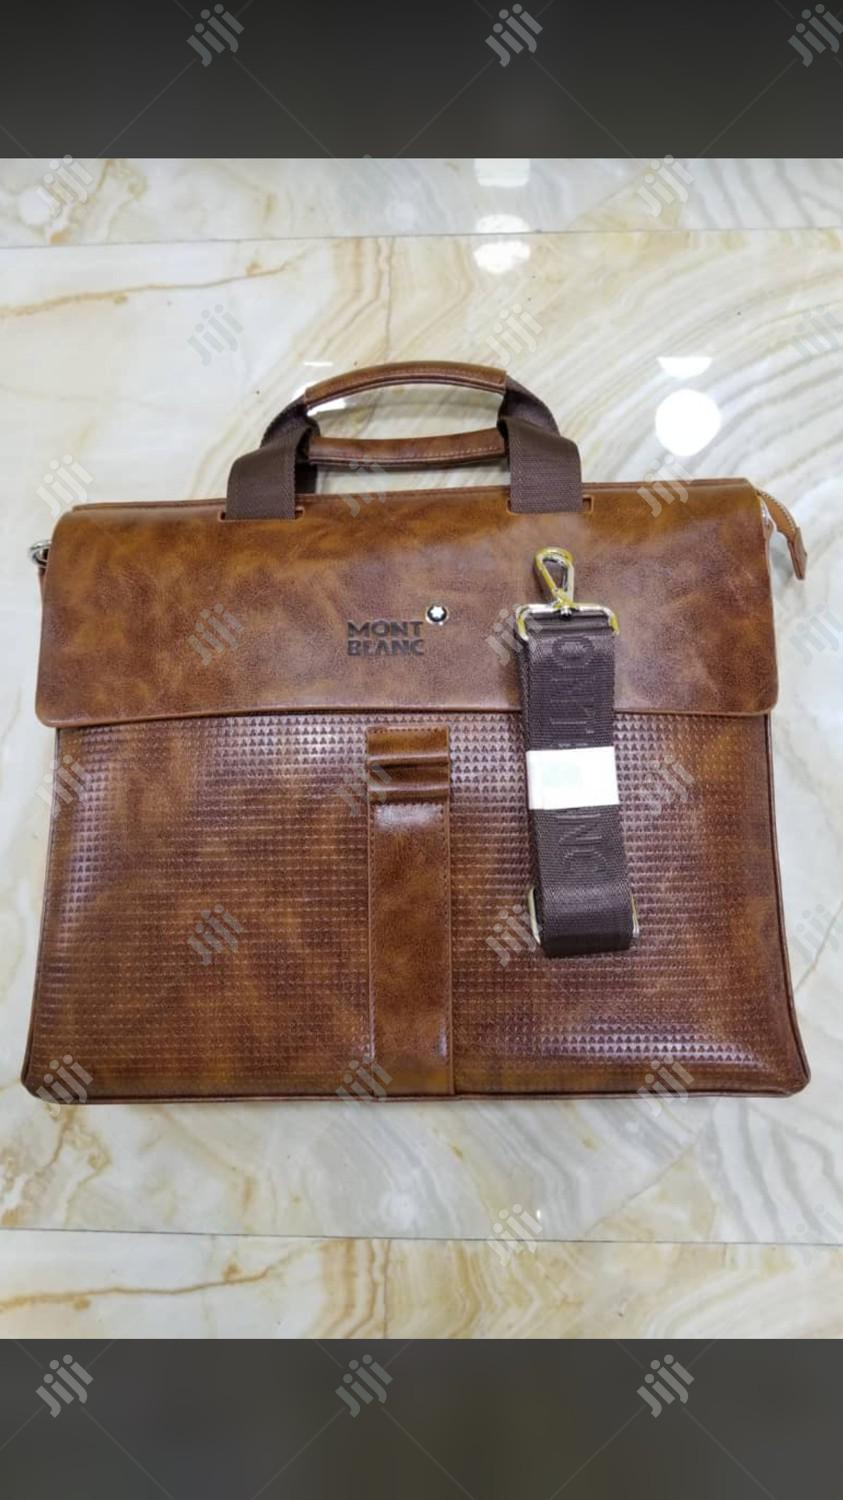 Montblanc Bags